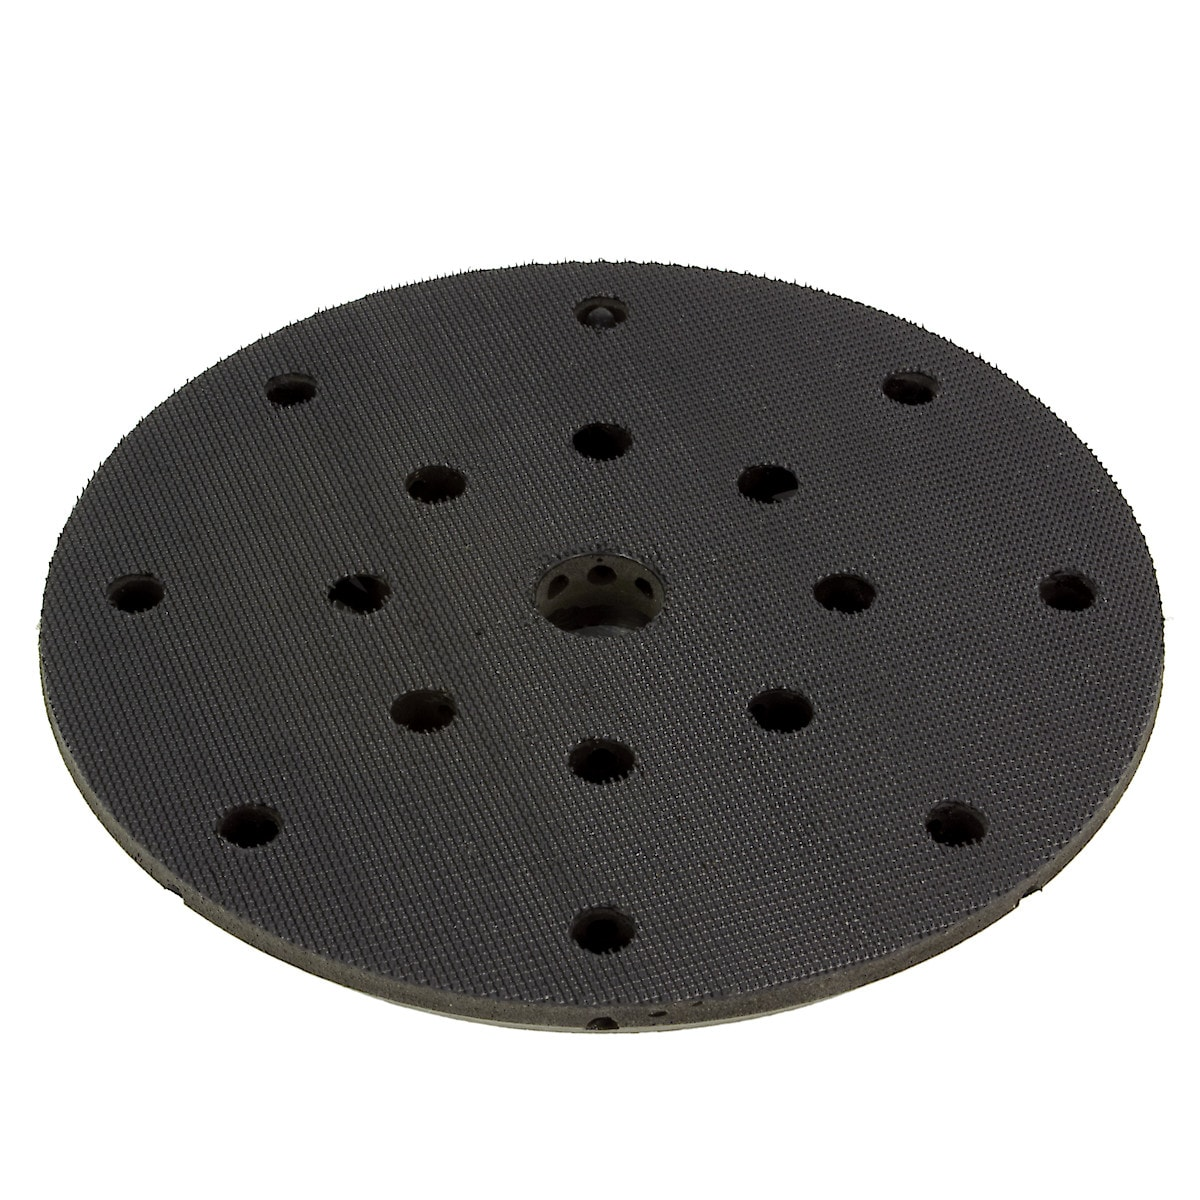 Backing pad Cocraft HPV 720